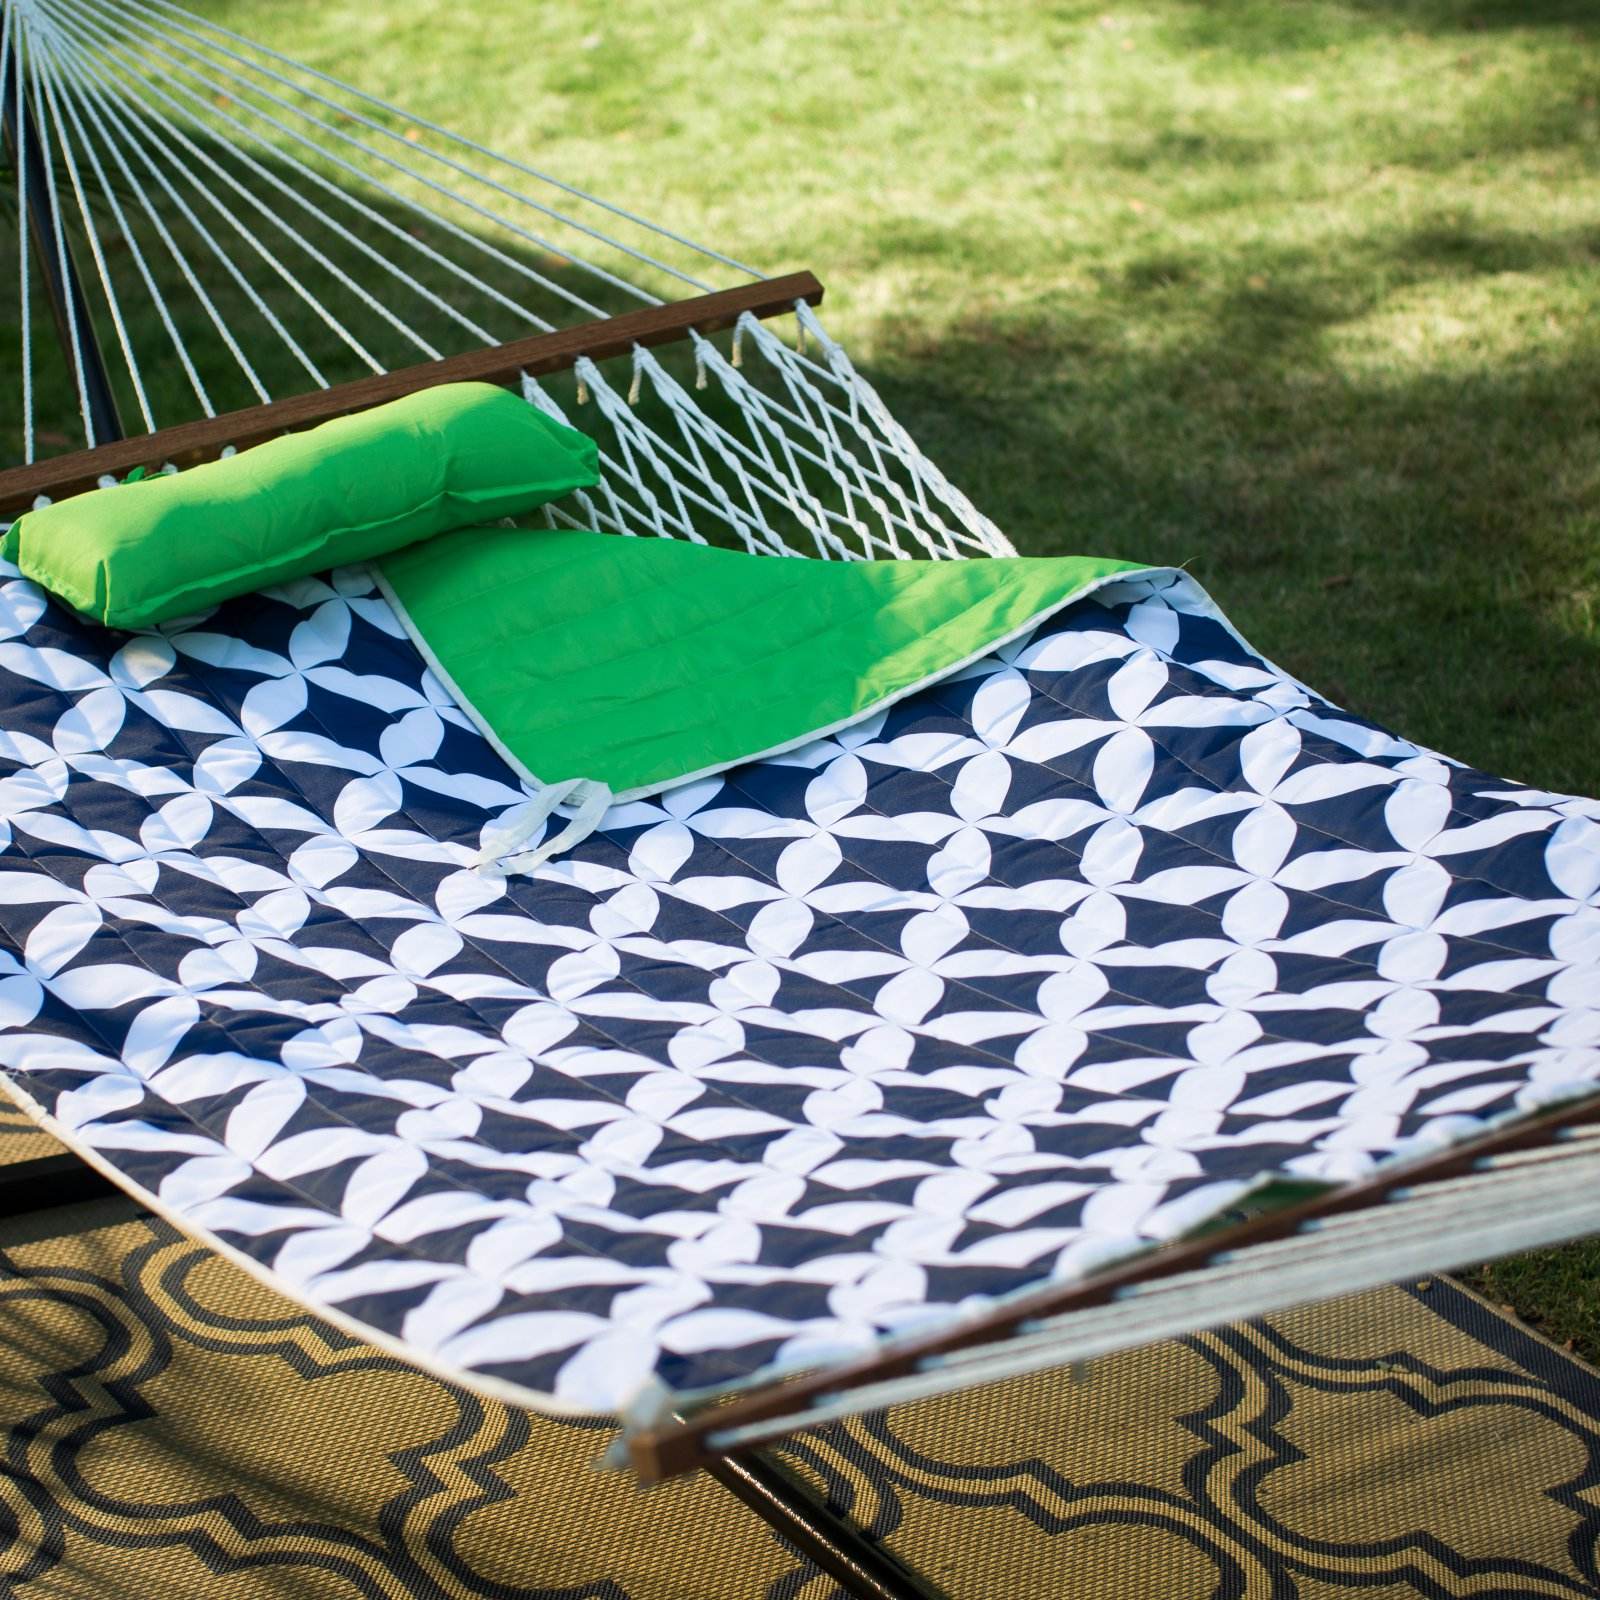 Island Bay 11 ft. Cotton Rope Double Hammock with Metal Stand Deluxe Set - Green/Navy